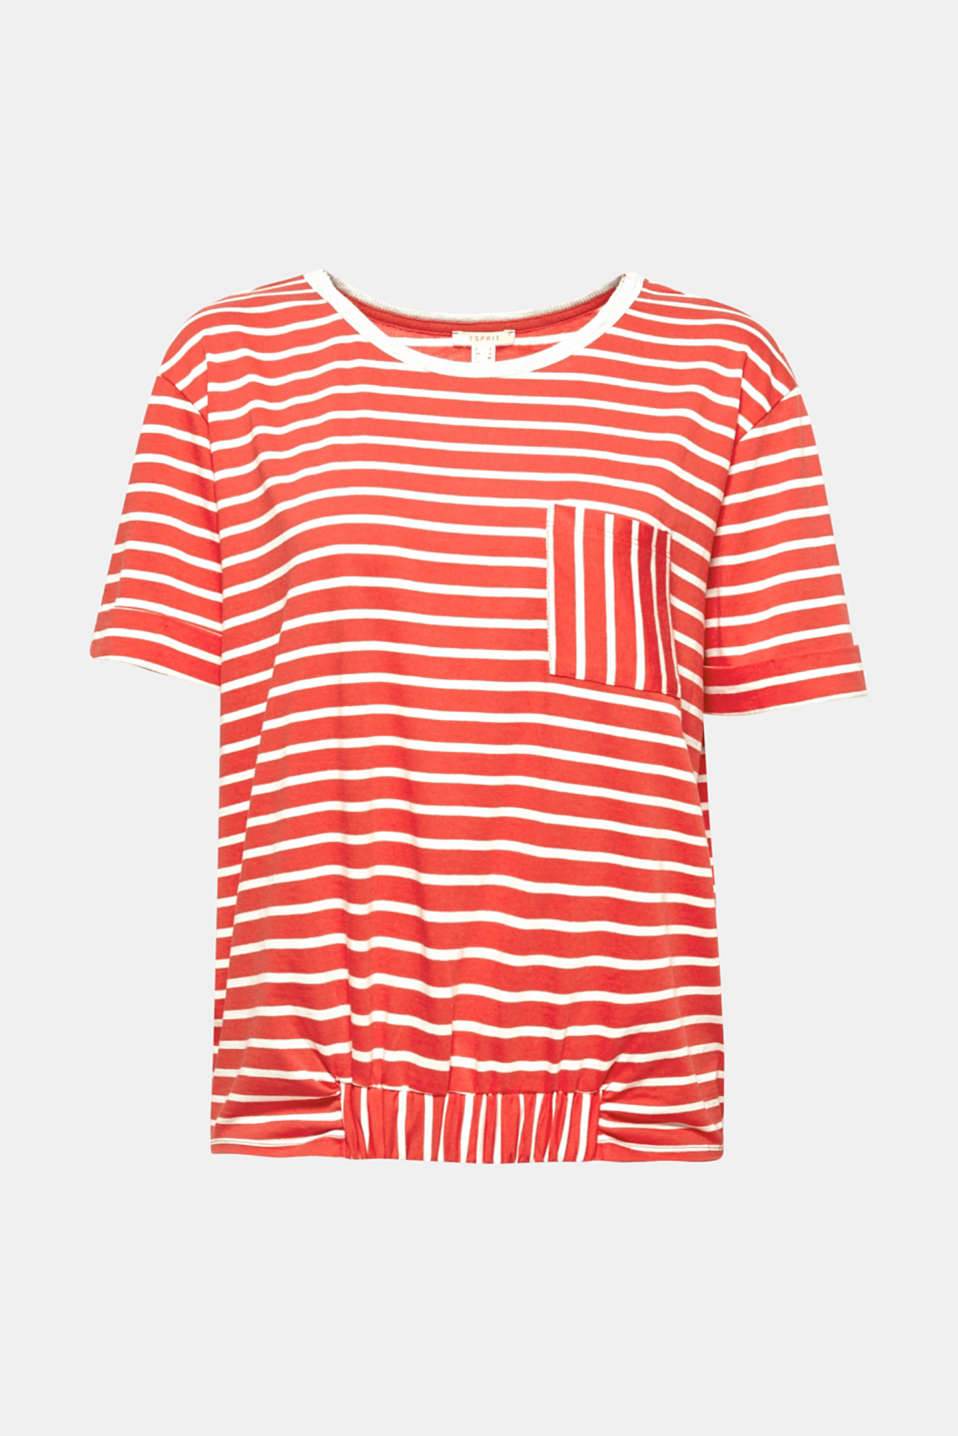 Freshening up our favourite stripes: this casually cut, comfortably soft top with elasticated details at the centre of the front hem and patch breast pocket!